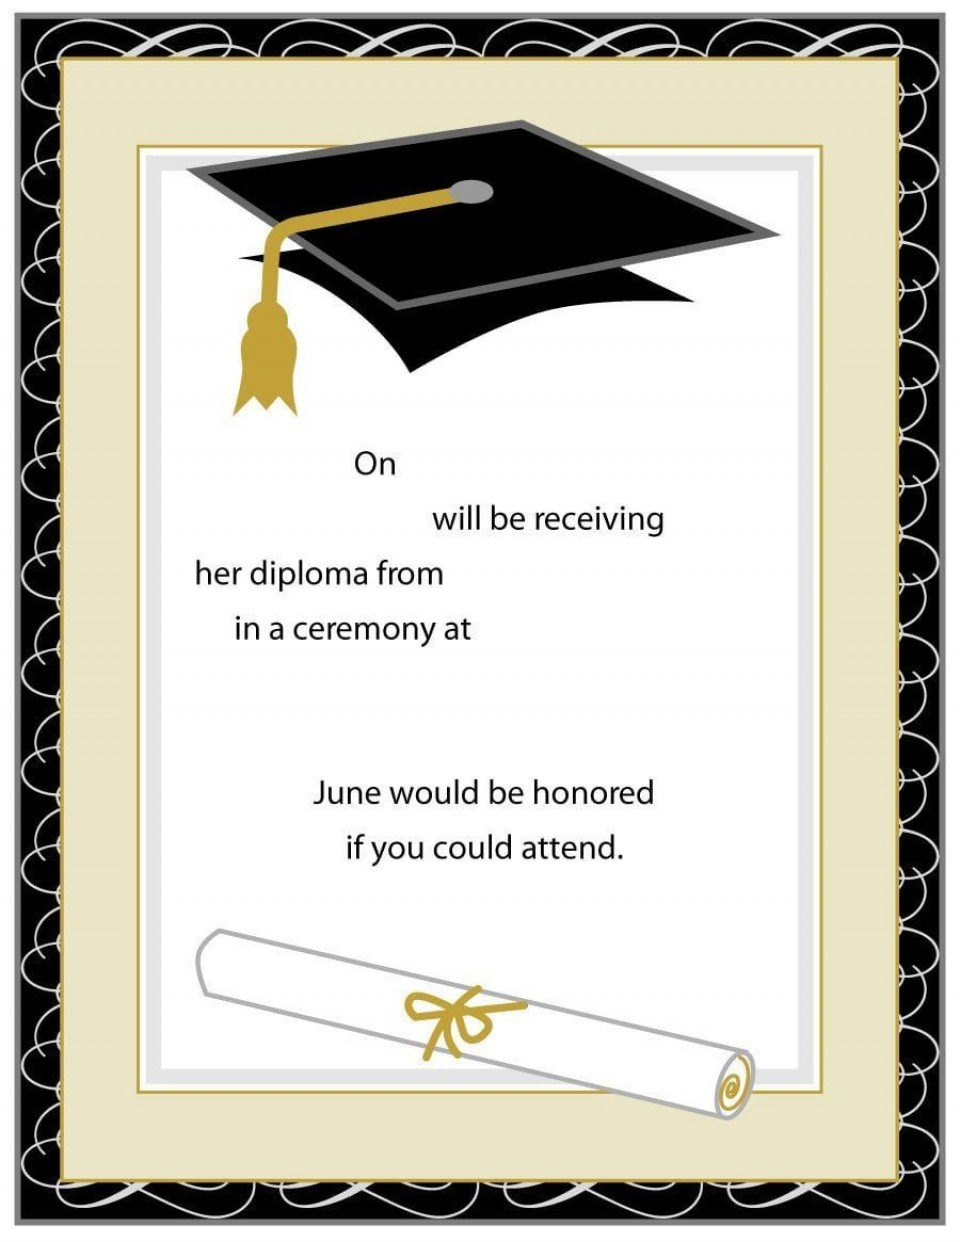 004 Breathtaking Free Printable Graduation Invitation Template High Resolution  Preschool Card 2019960